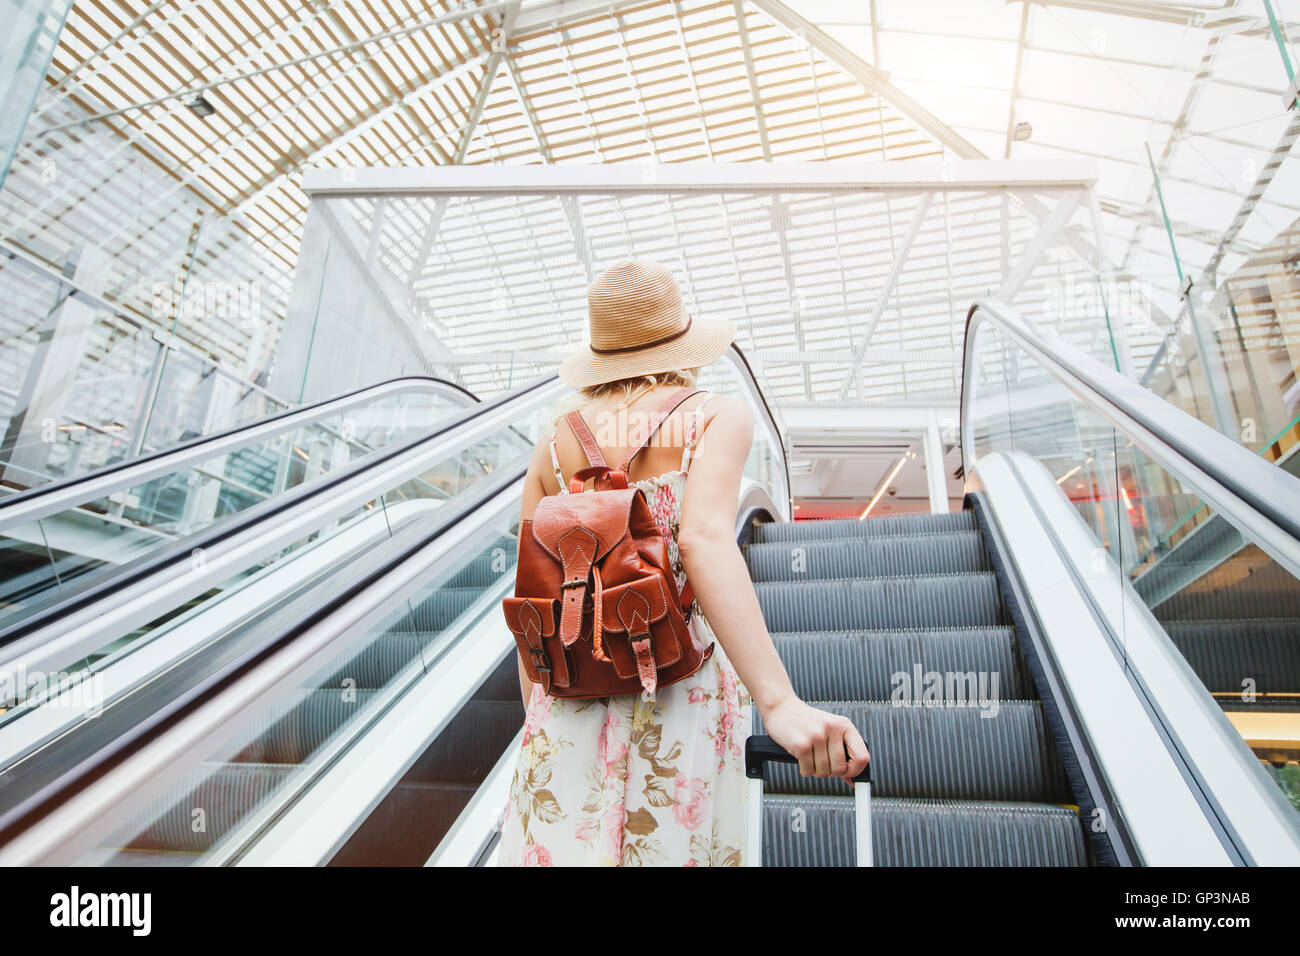 woman in modern airport, people traveling with luggage - Stock Image